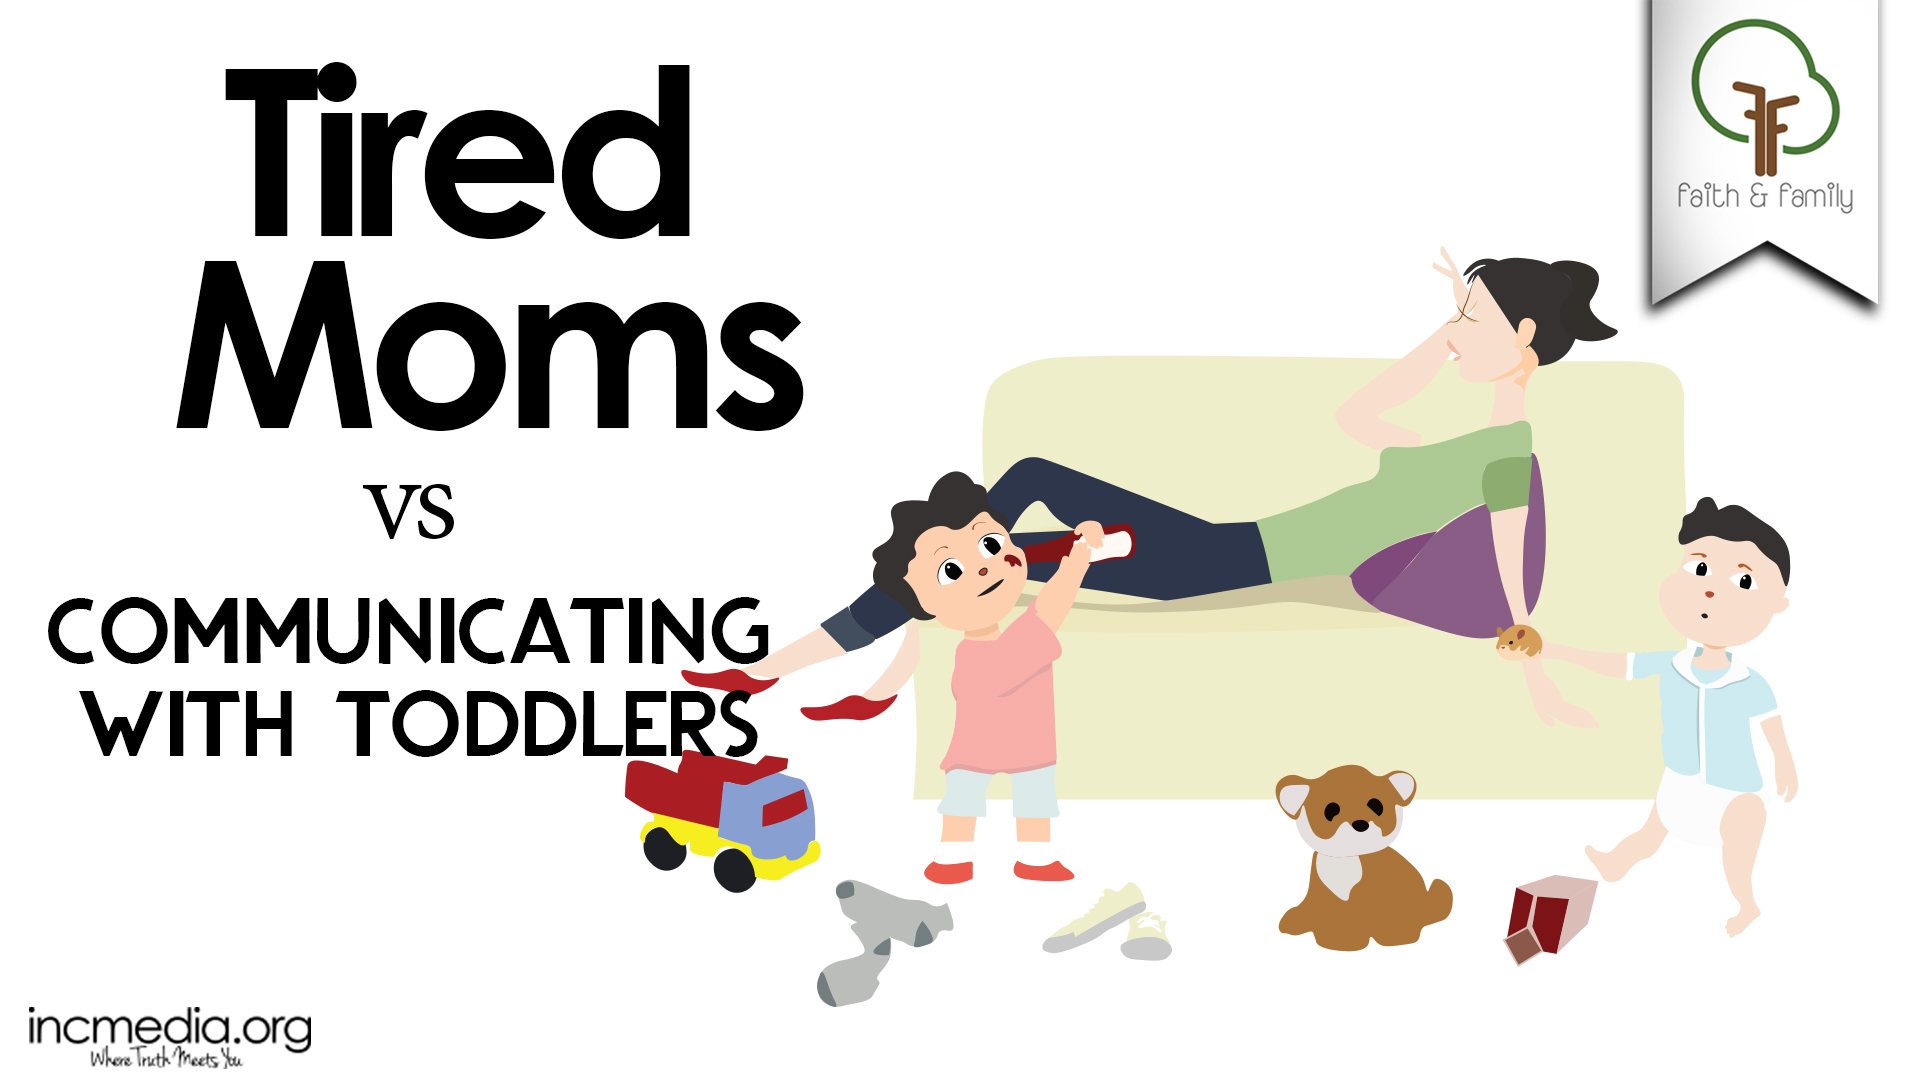 Tired Moms vs Communicating with Toddlers